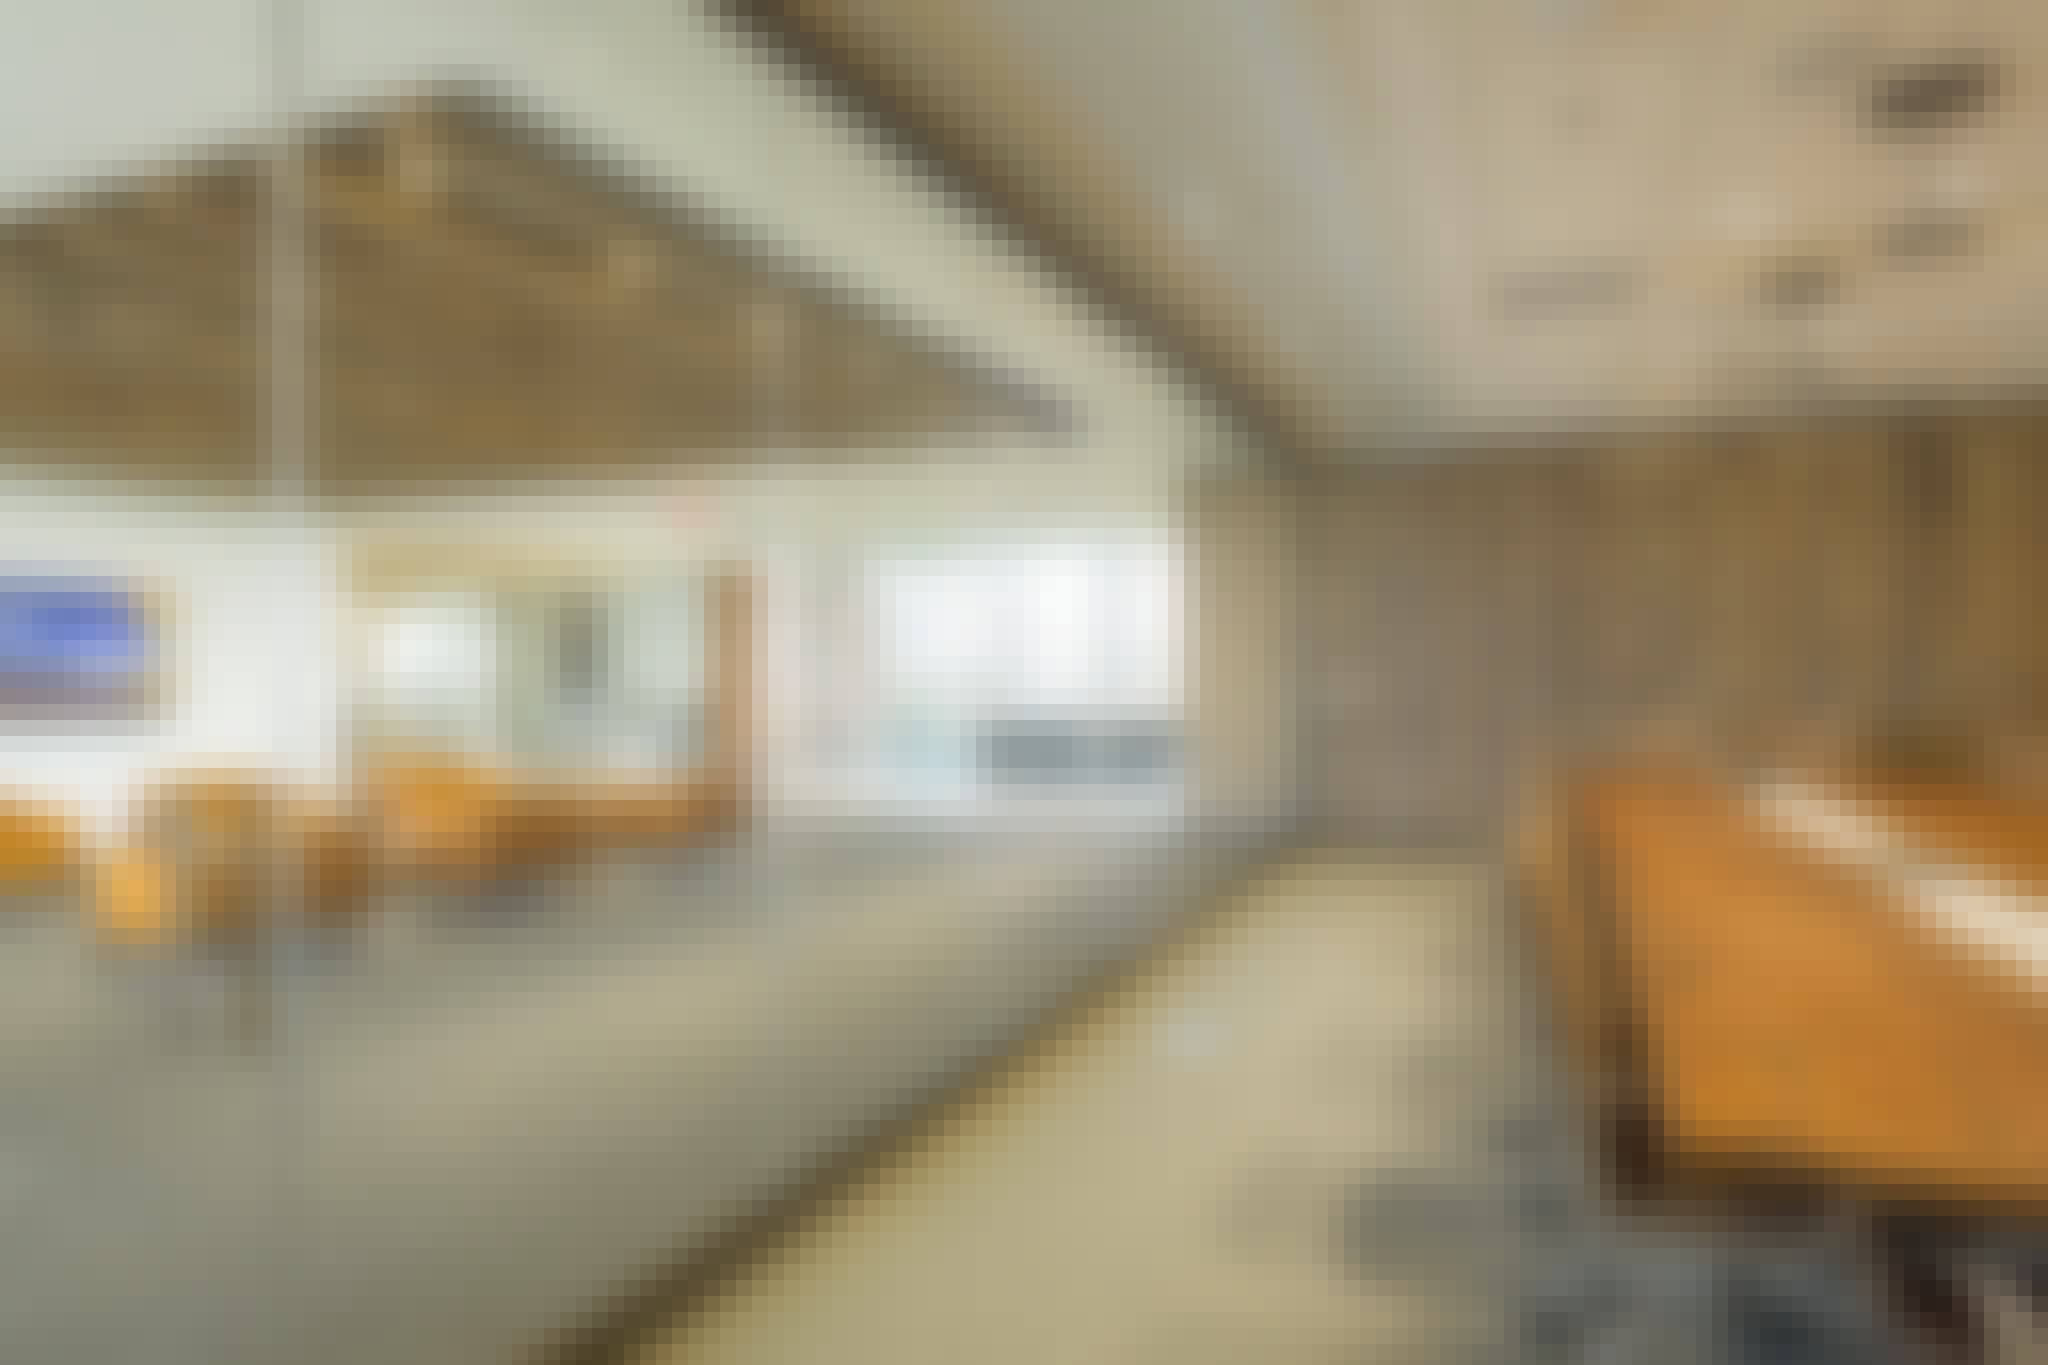 interior glass walls for offices reduces aerosol transmission